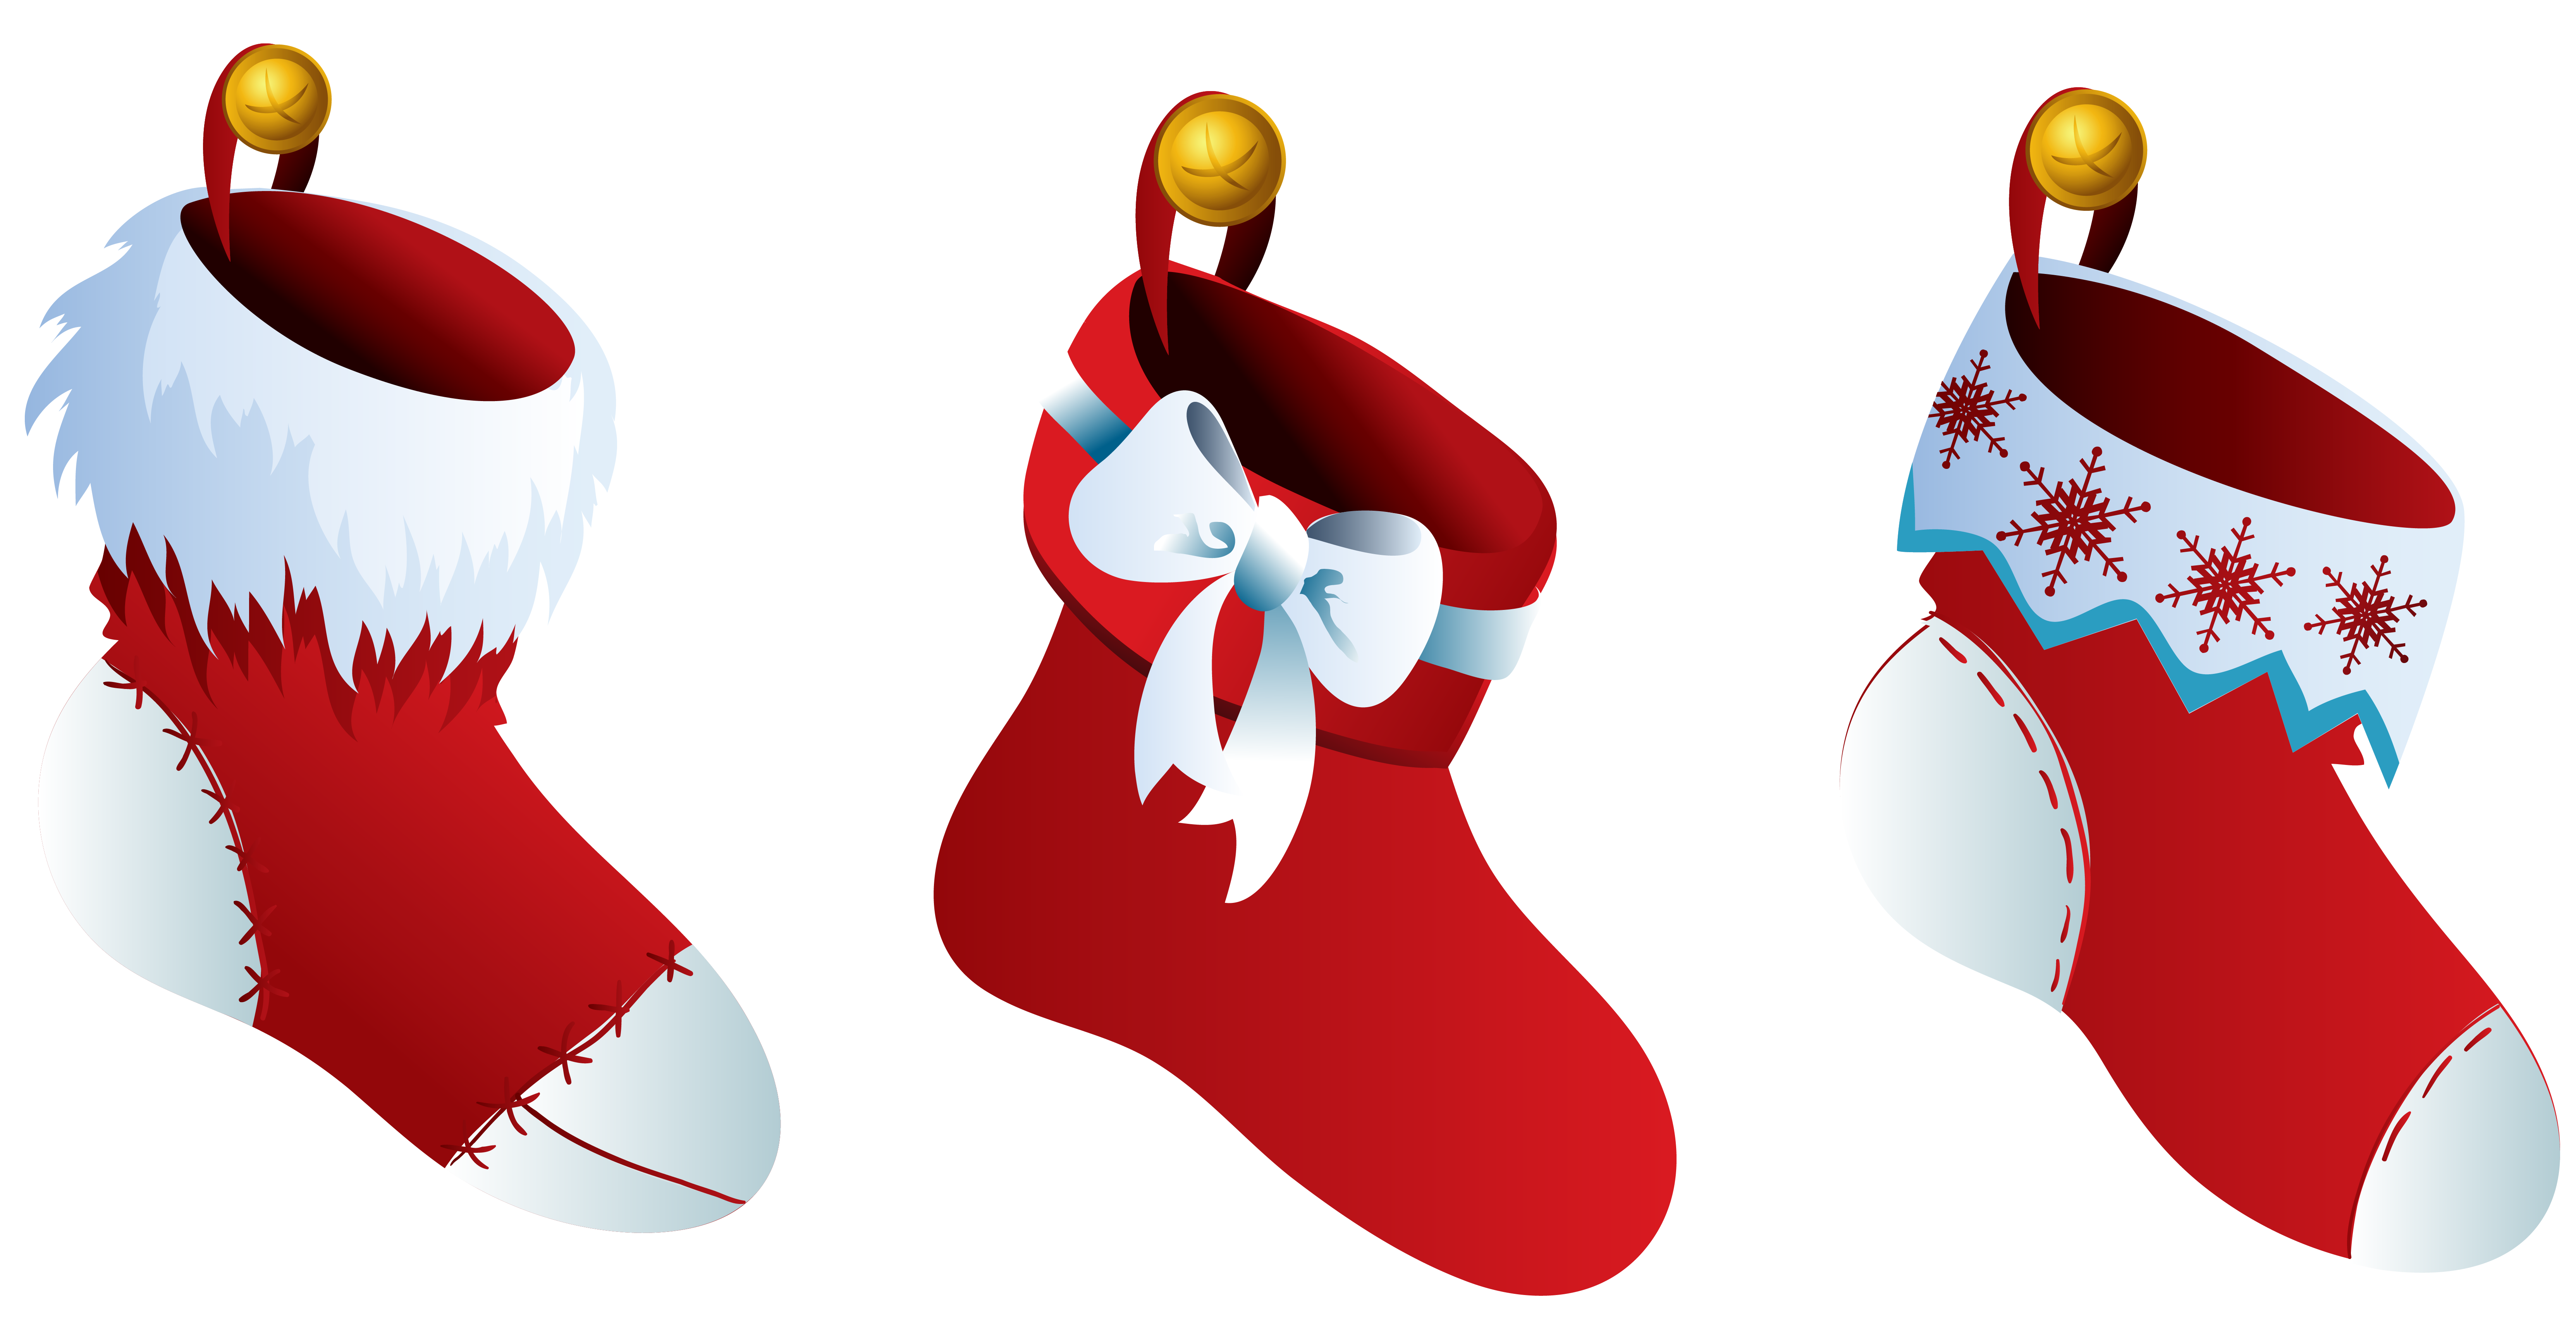 jpg free download Stocking clipart. Beautiful looking christmas transparent